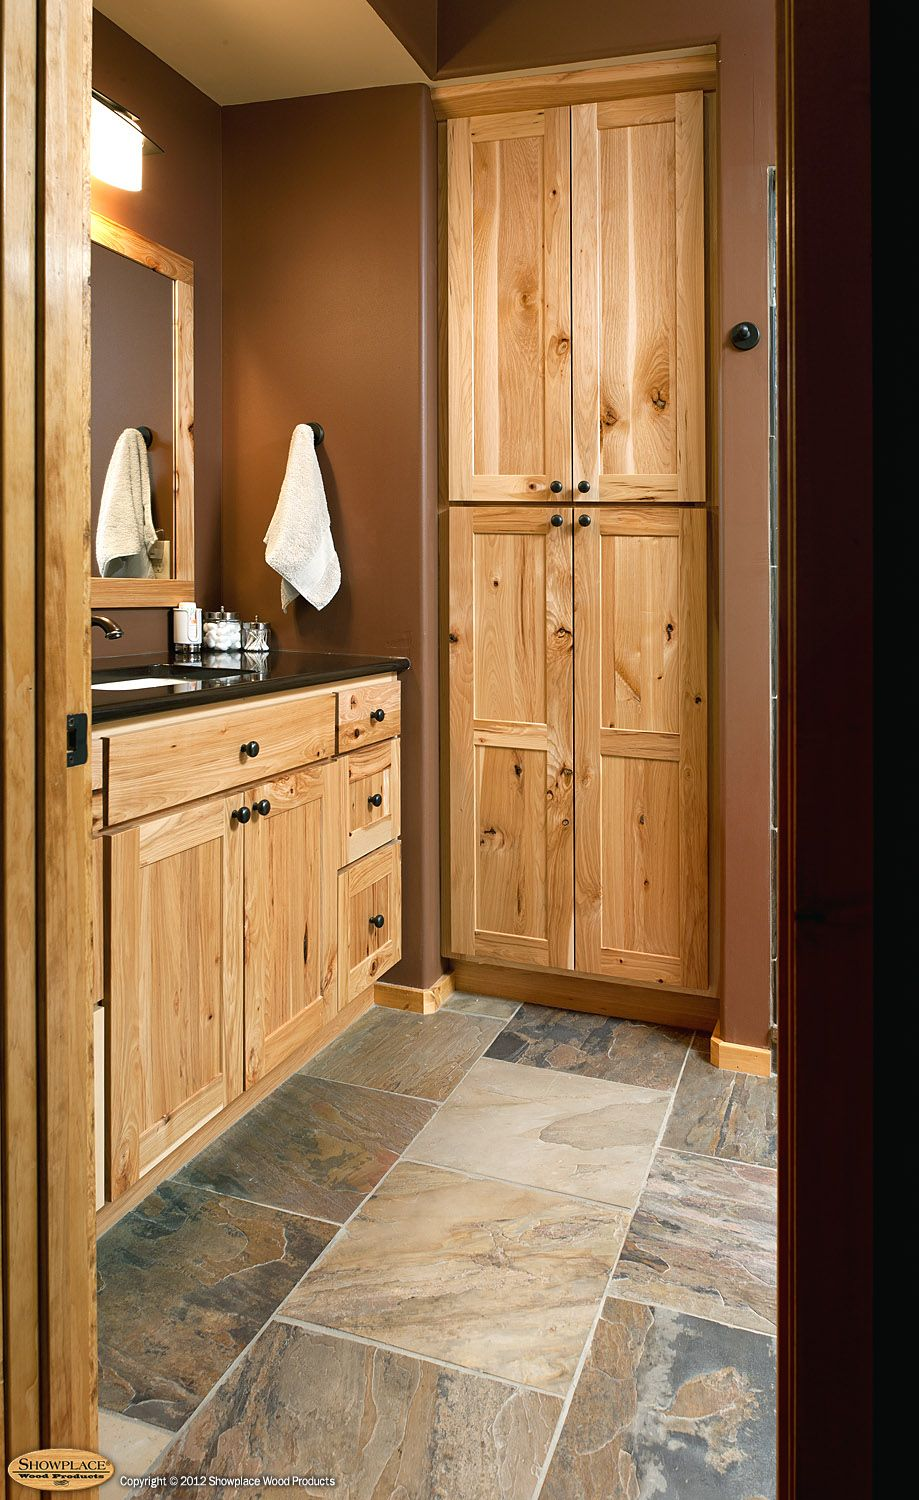 Rustic Hickory Bathroom Vanity Cabinets Ears Again In This Lower Level Bath